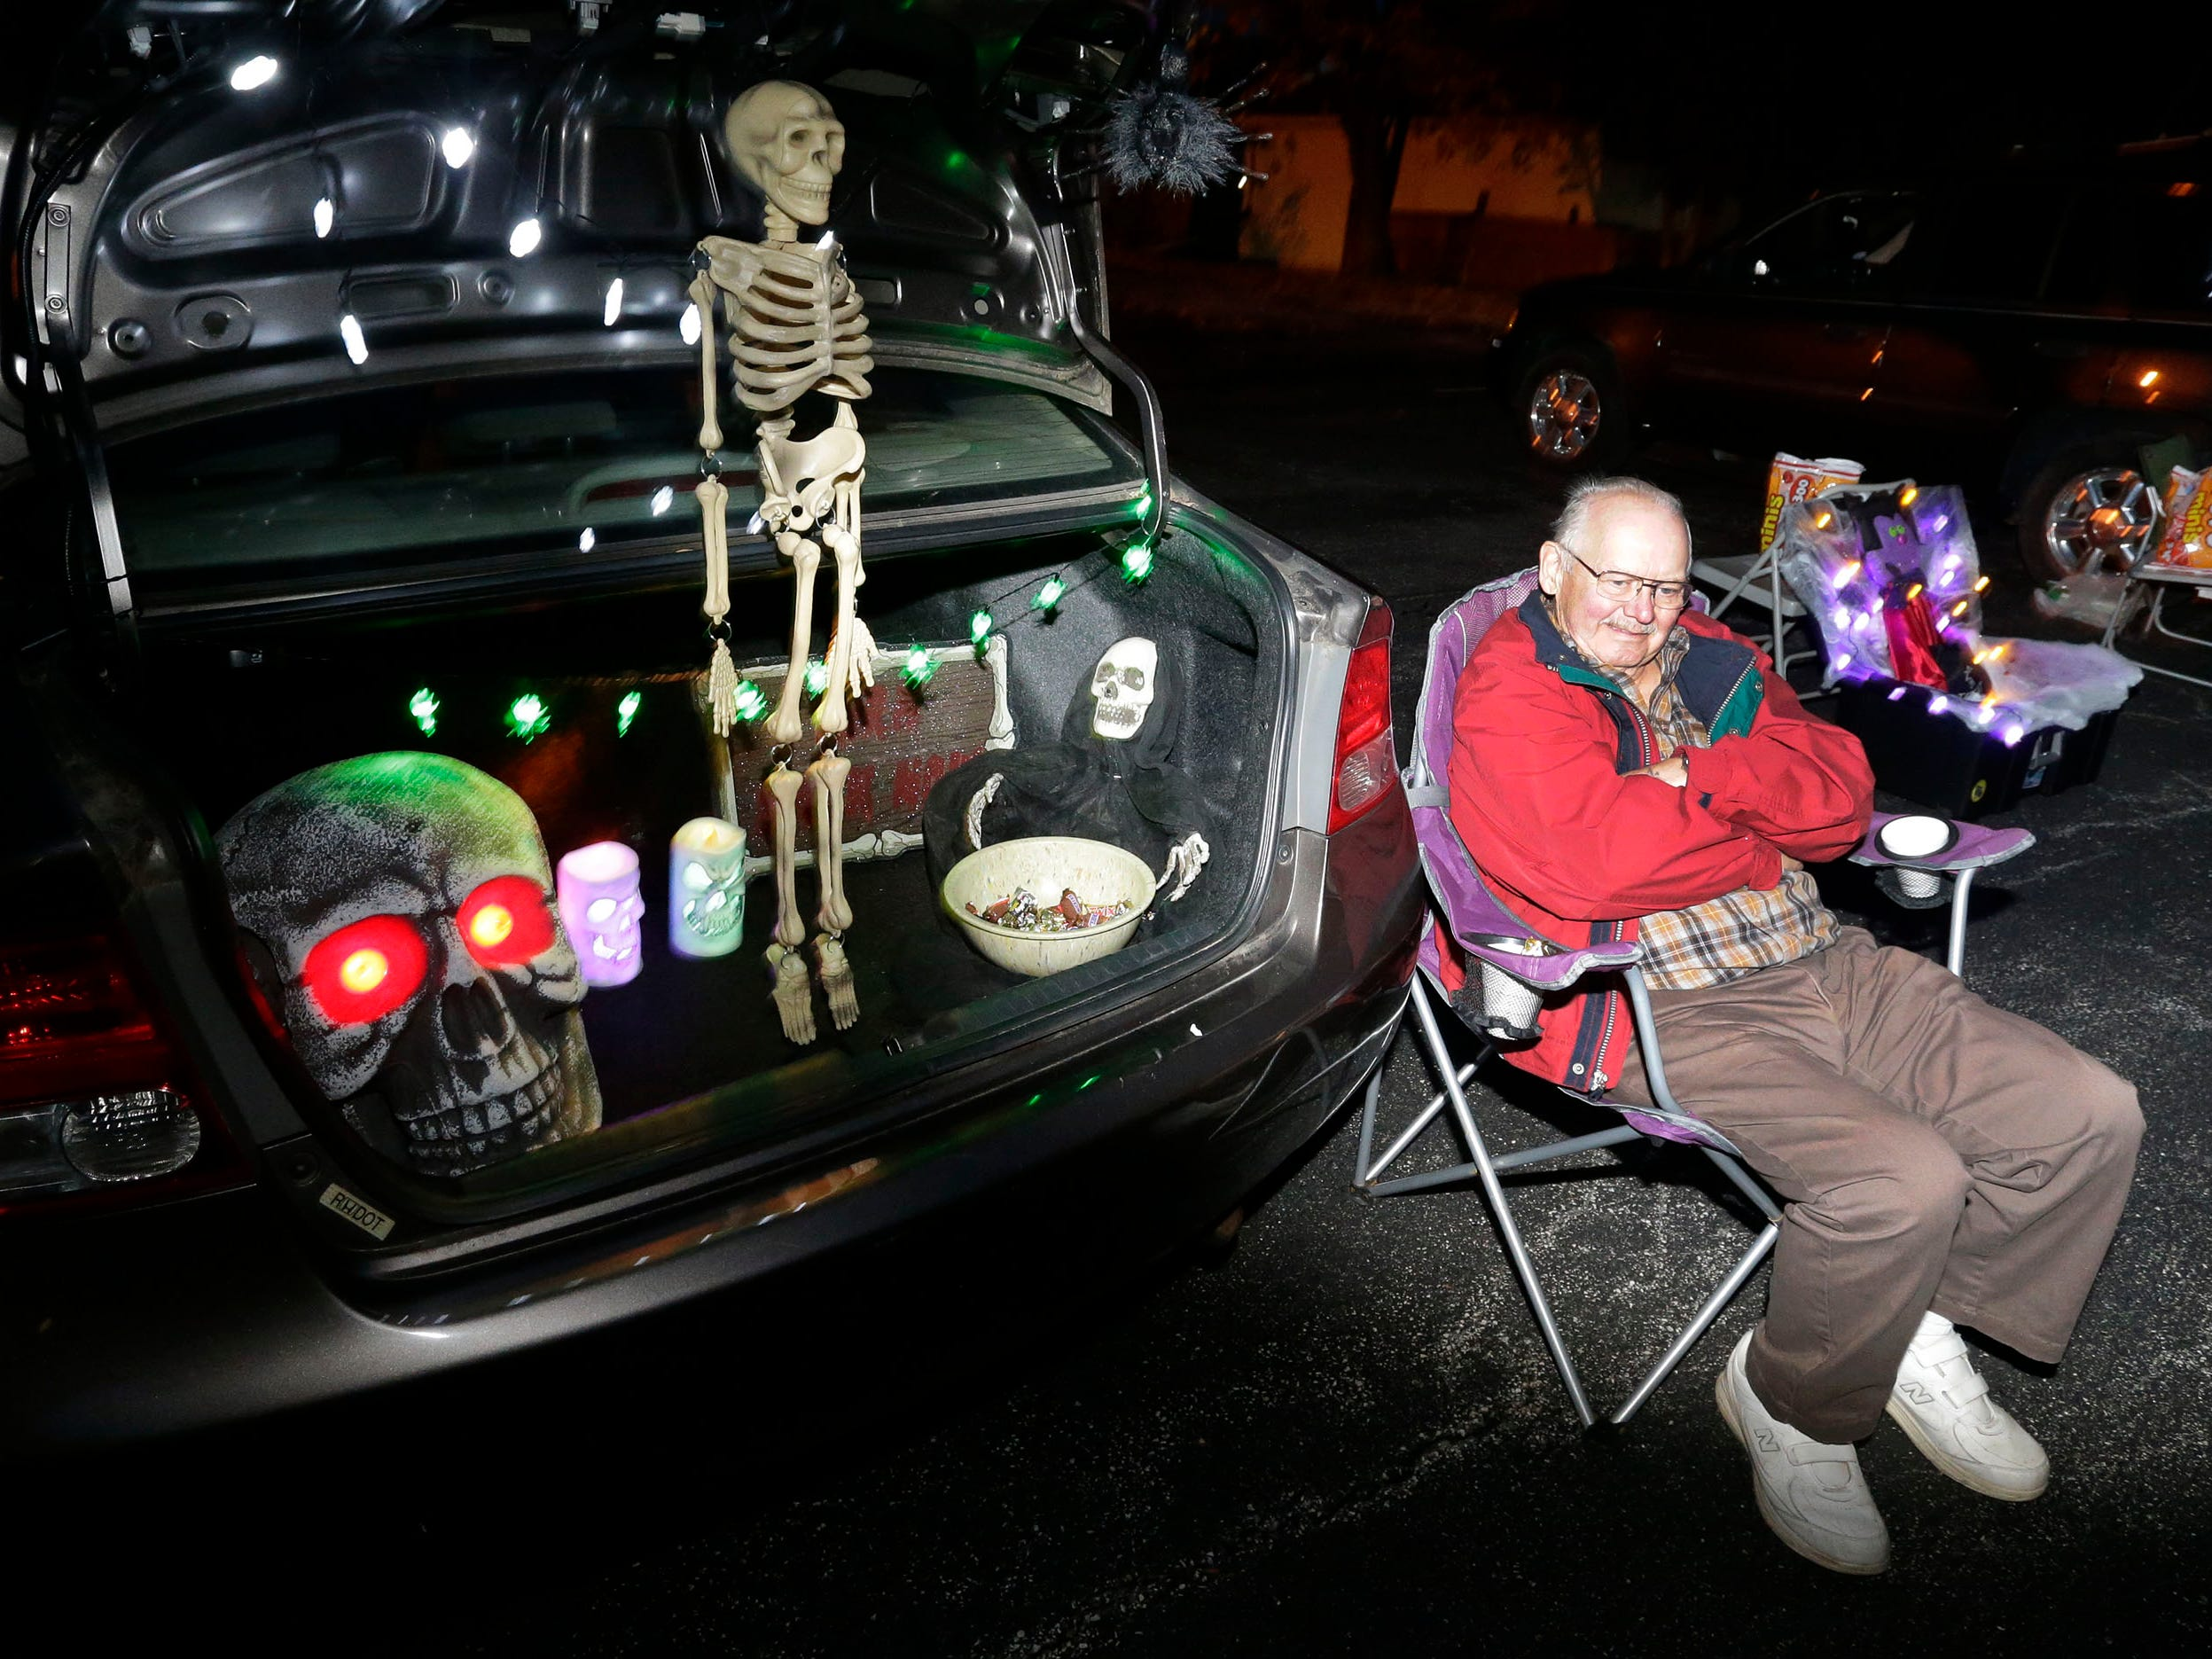 Tom Beauchaine of Ishpeming, Michigan sits by a Trunk or Treat at St. Peter Lutheran Church during Trick or Treat, Wednesday, October 31, 2018, in Sheboygan, Wis.